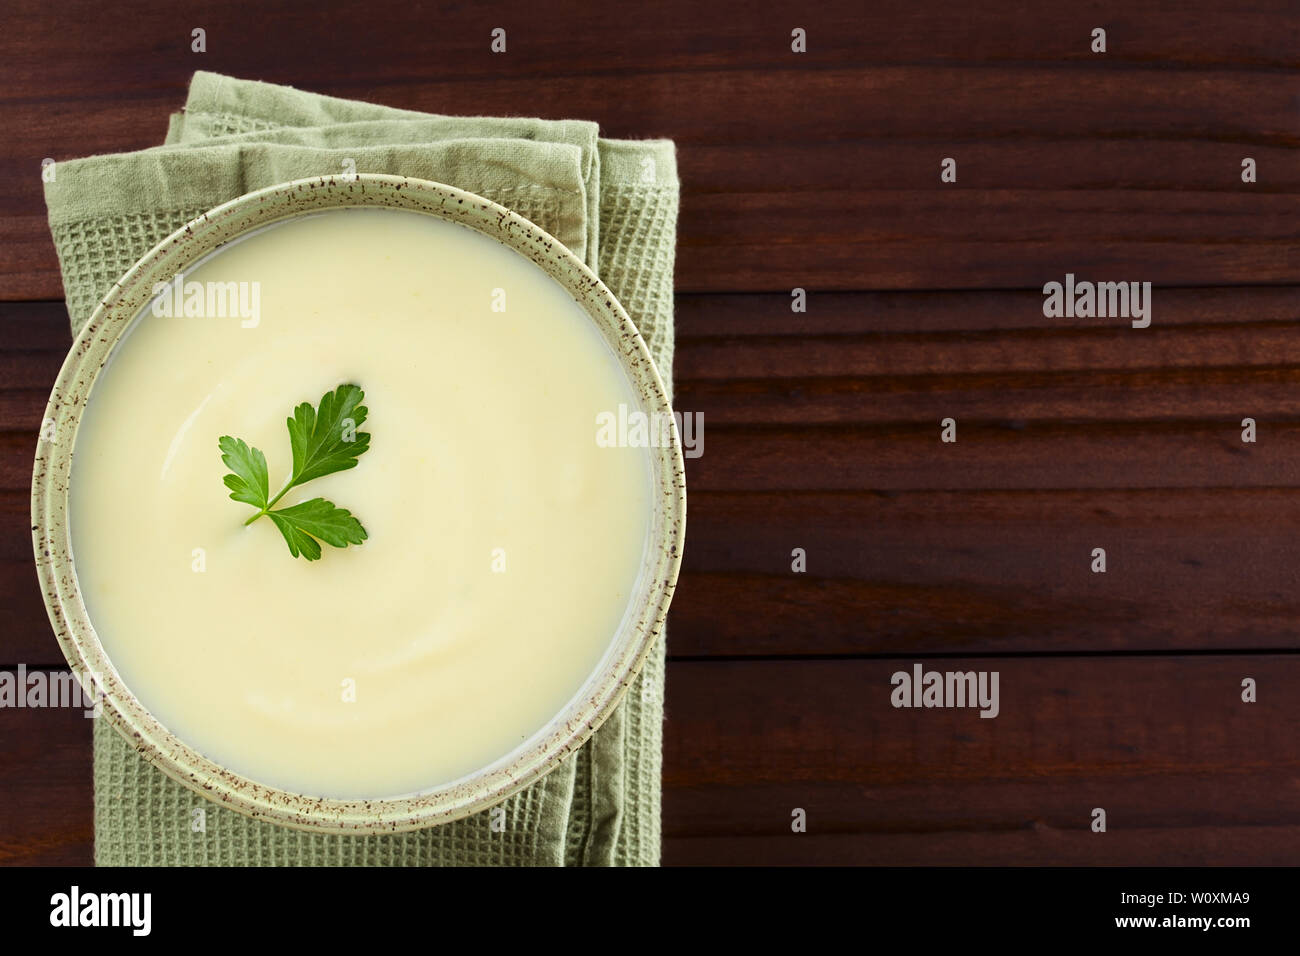 Fresh homemade cream of potato soup in bowl garnished with parsley leaf, photographed overhead with copy space on the right side (Selective Focus) - Stock Image